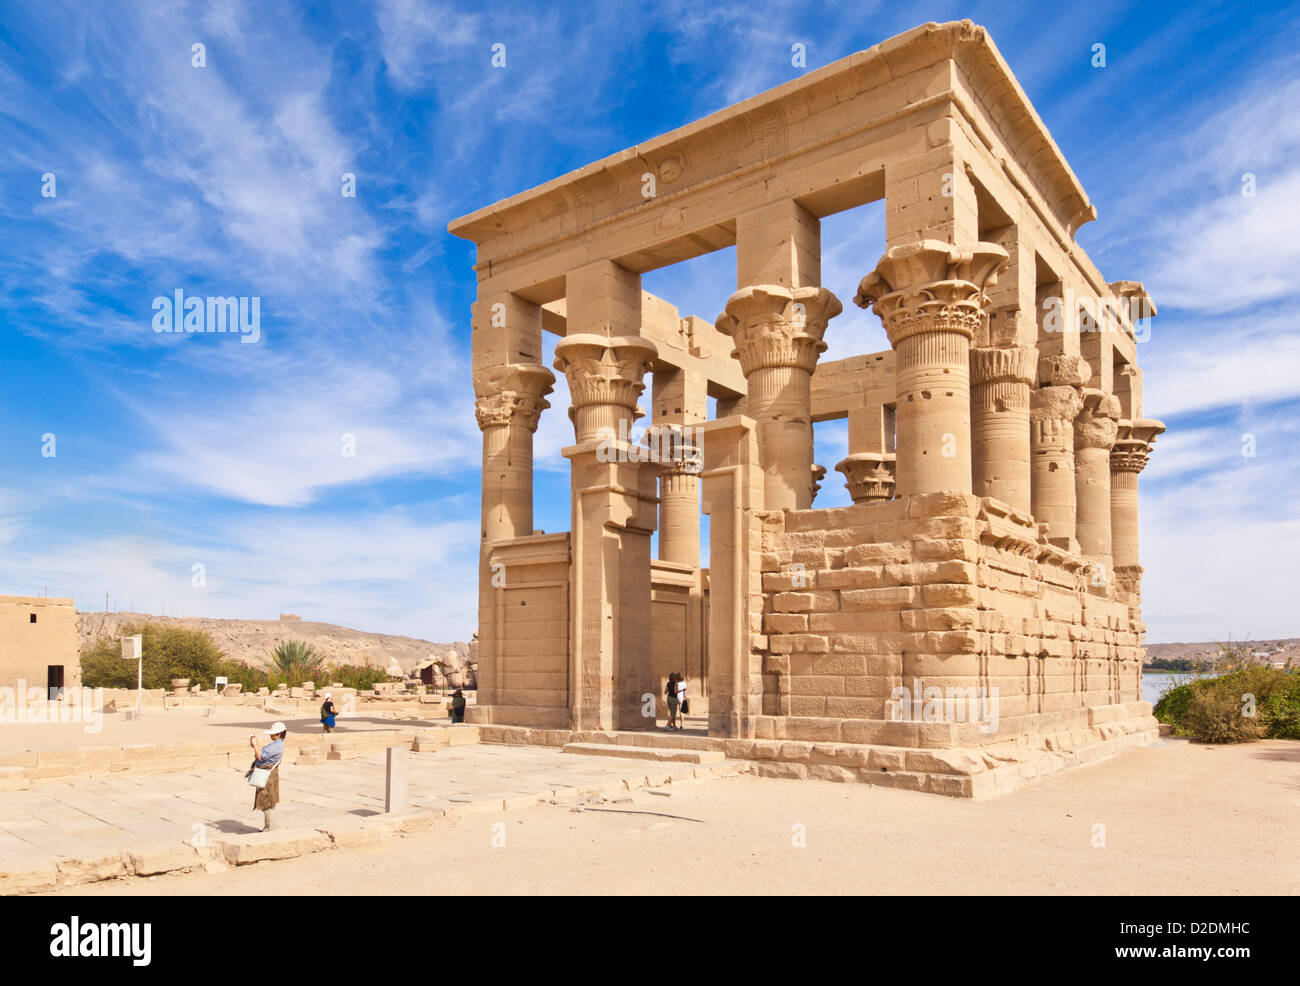 tourists exploring the Kiosk of Trajan at the Temple of Isis Philae Aswan Upper Egypt Middle East - Stock Image